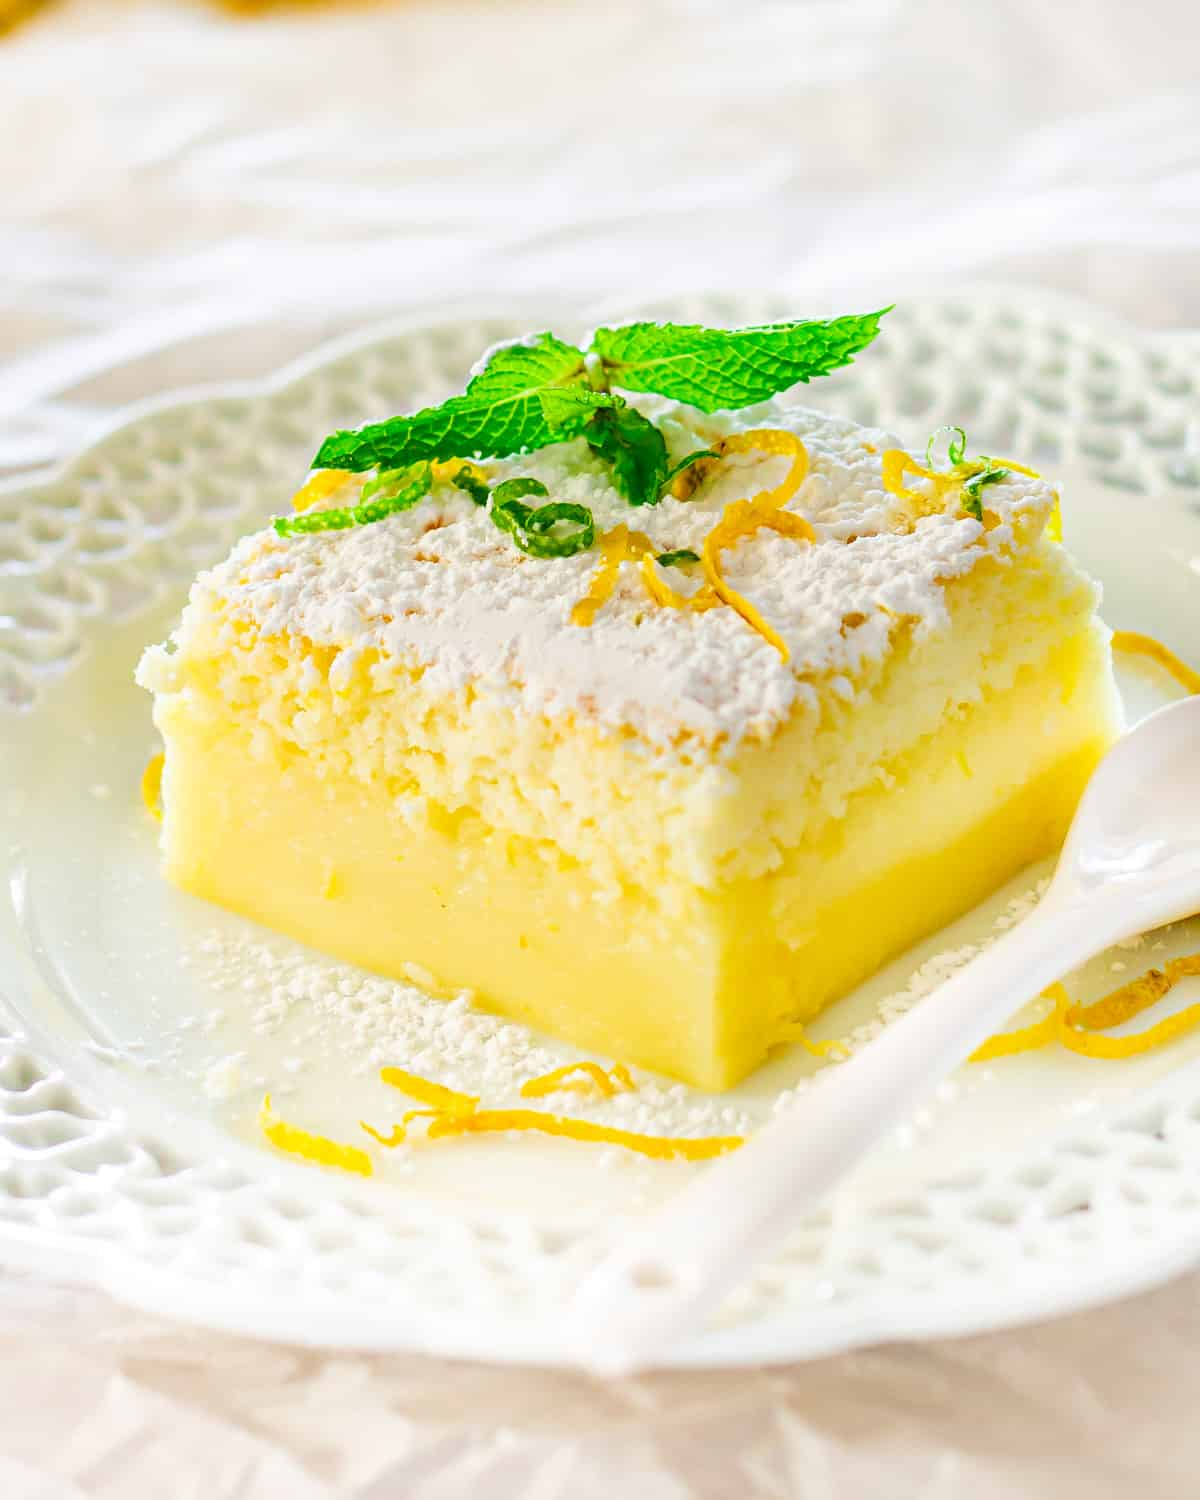 a slice of lemon magic cake on a white plate garnished with mint